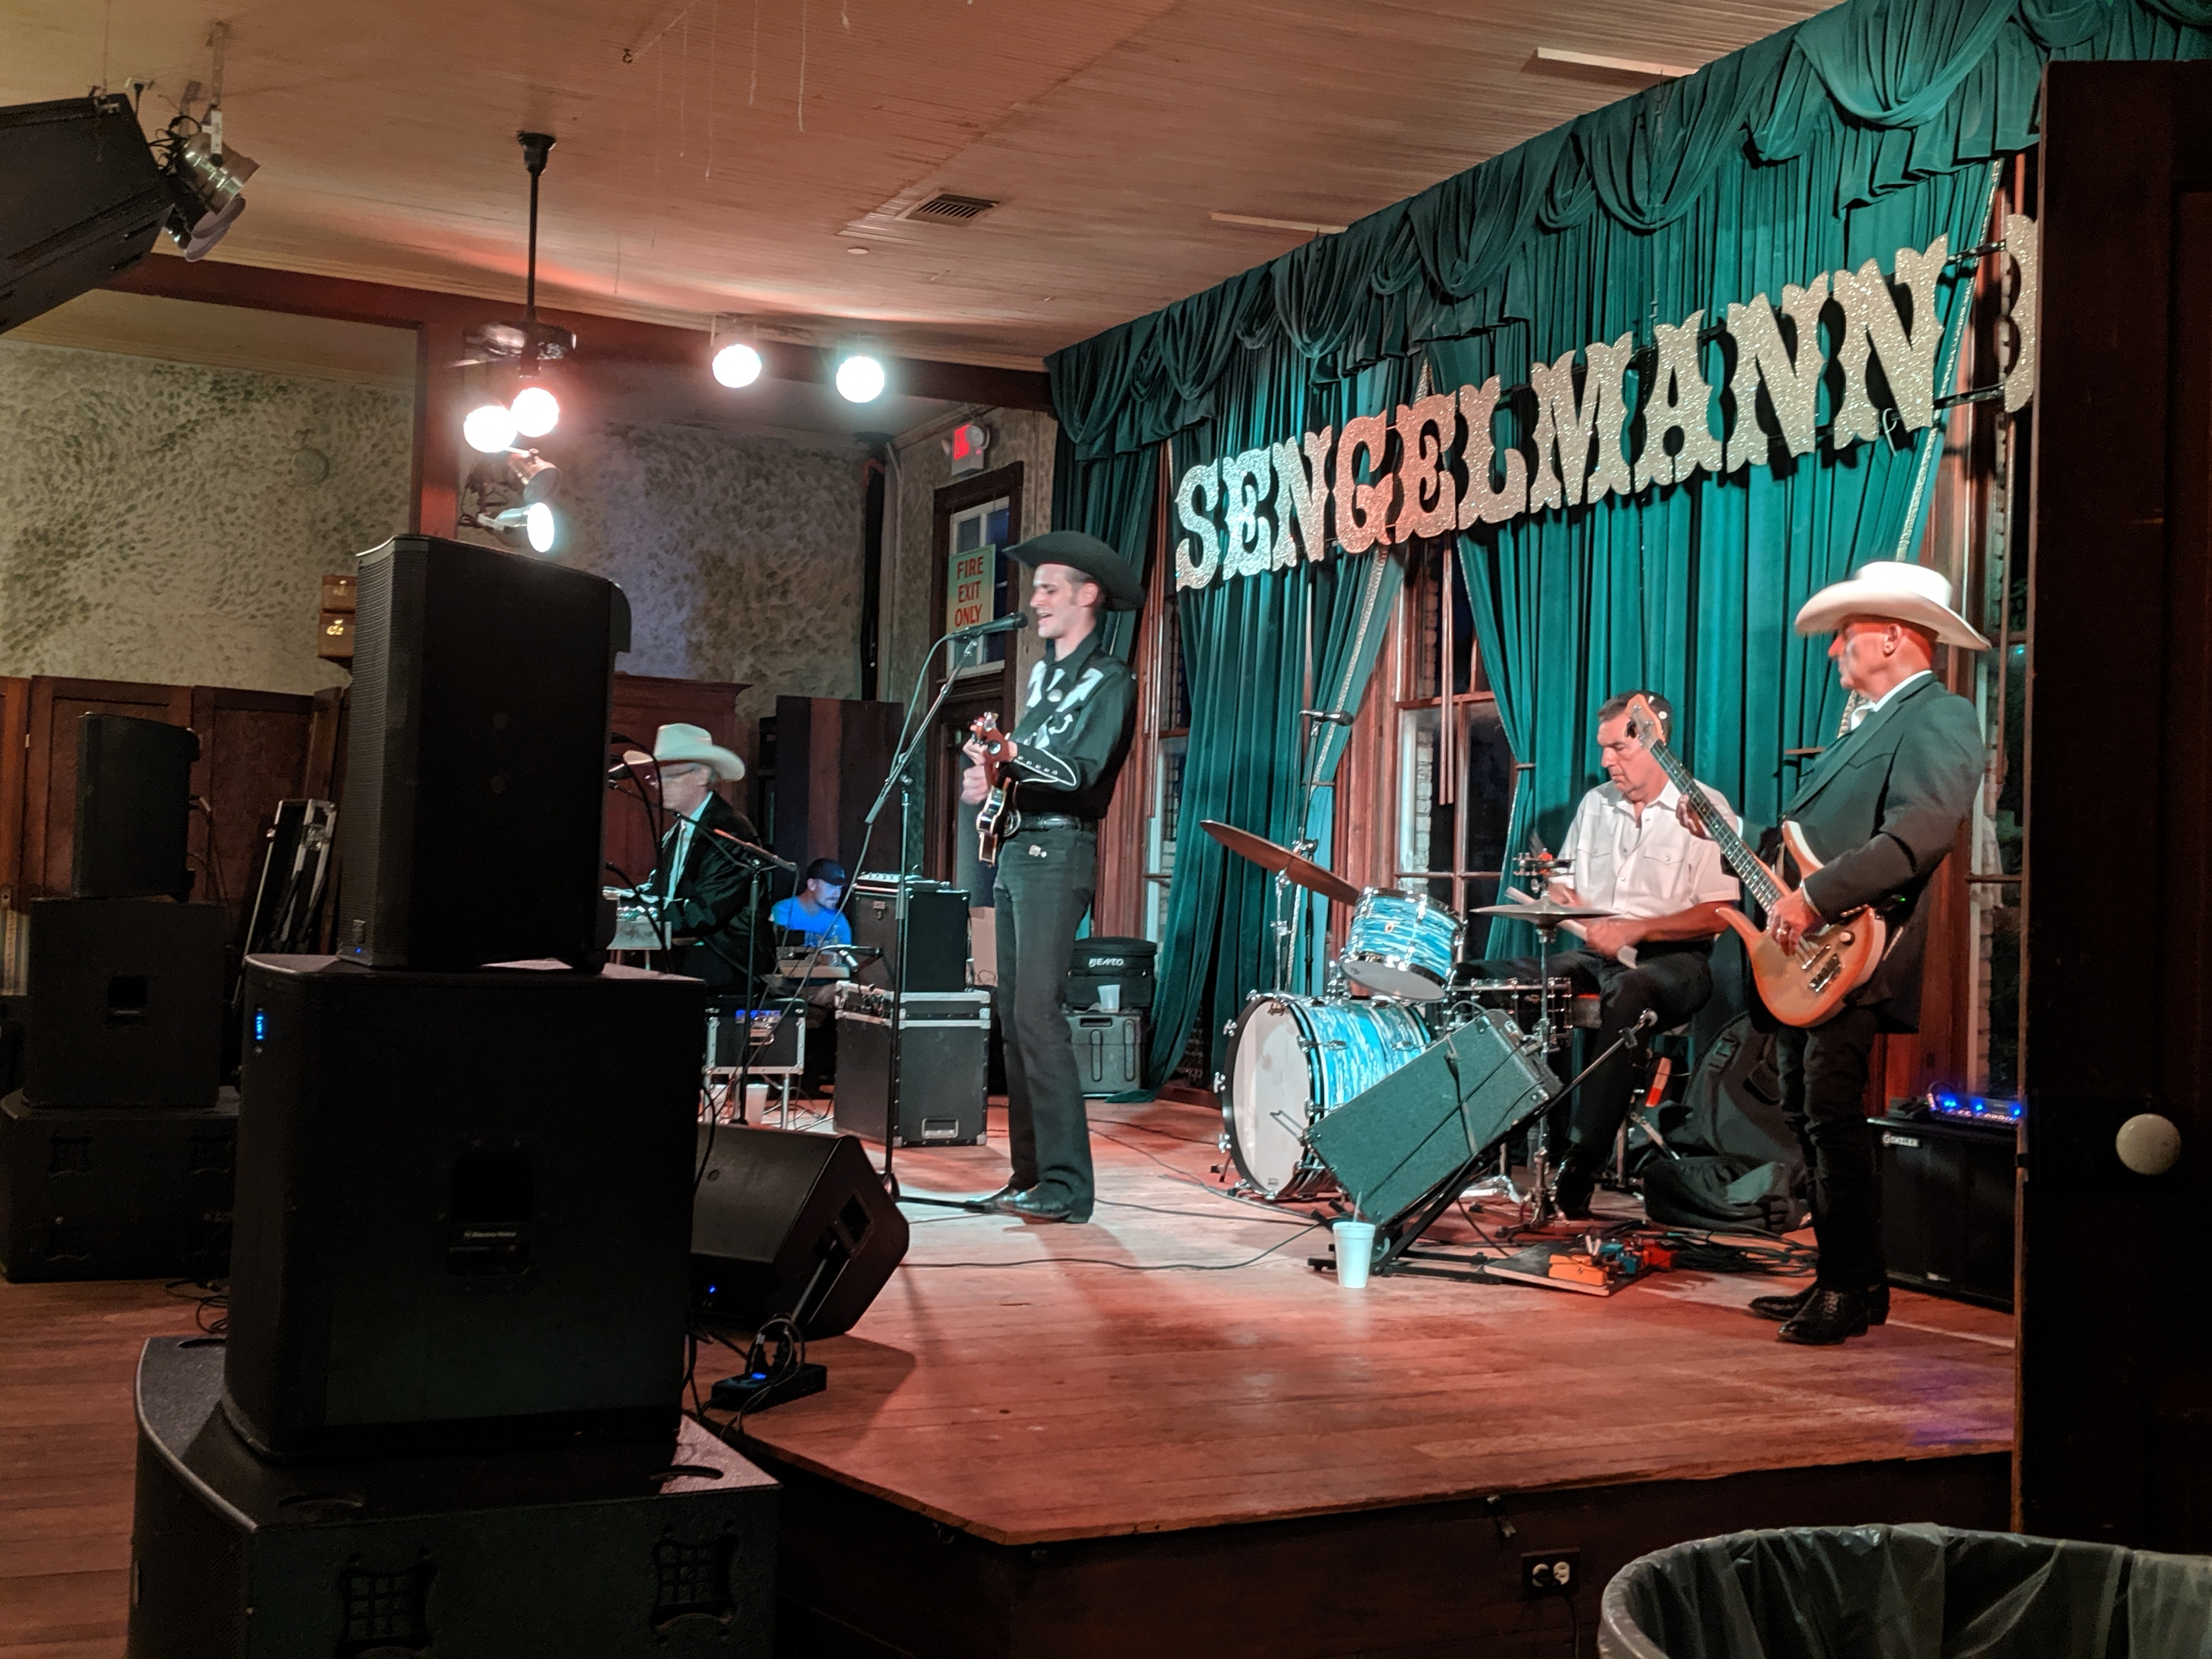 Jake Penrod and his band playing on stage